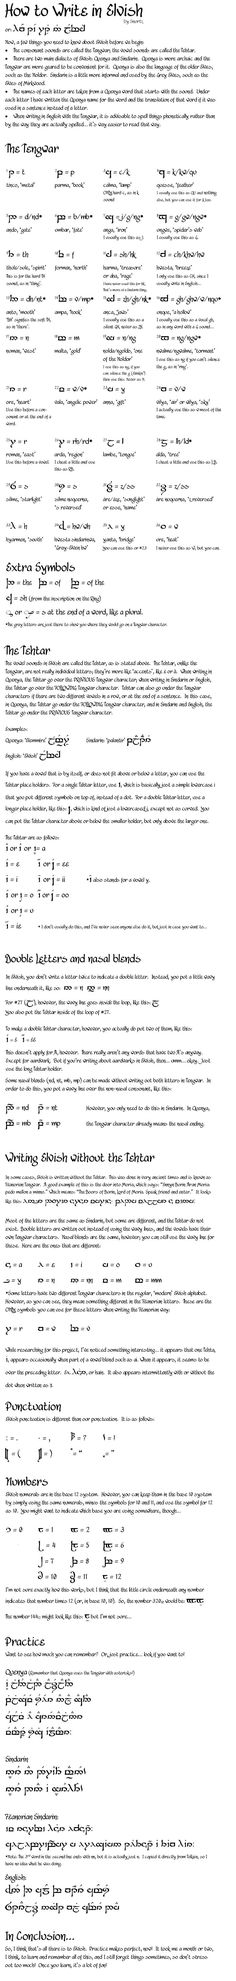 TUTORIAL: How to write in Elvish.. This is the by far the most detailed and thorough I've ever seen.